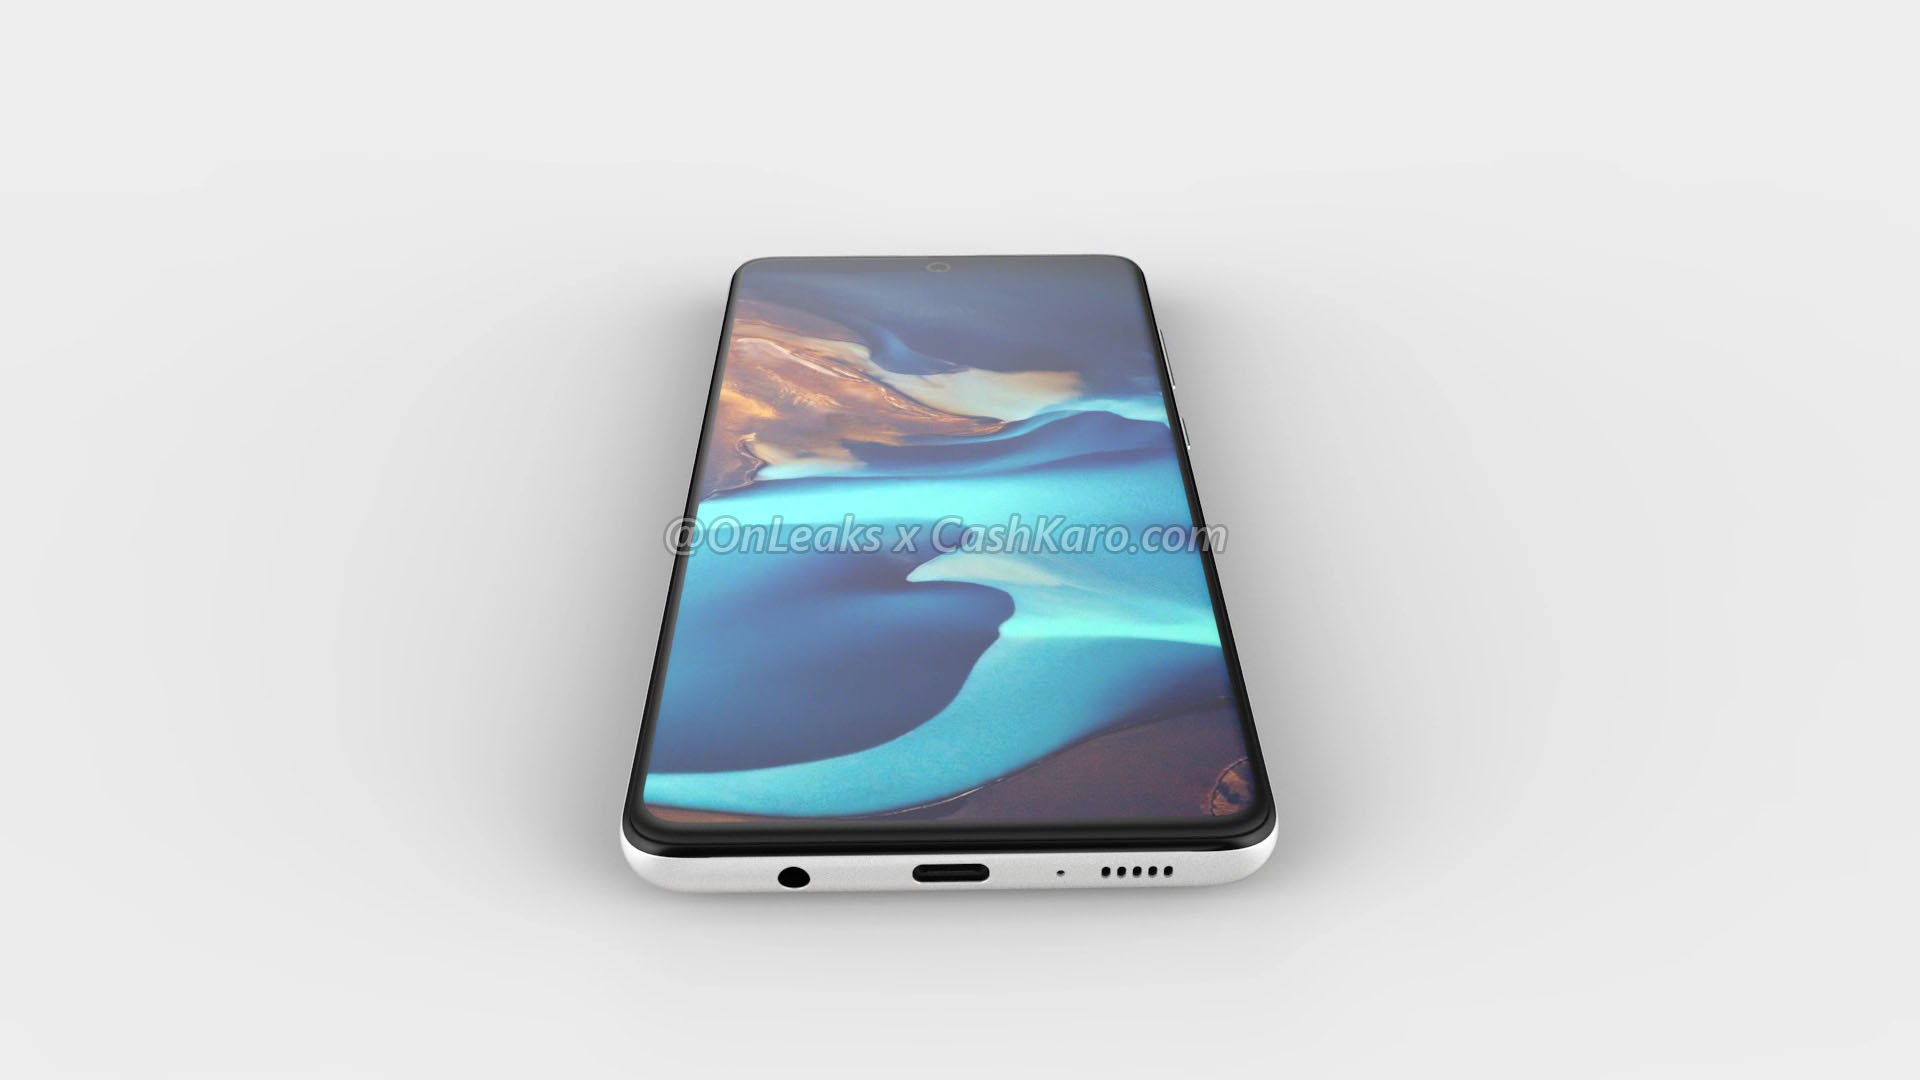 Samsung S Upcoming Galaxy A71 Smartphone Render Images And 360